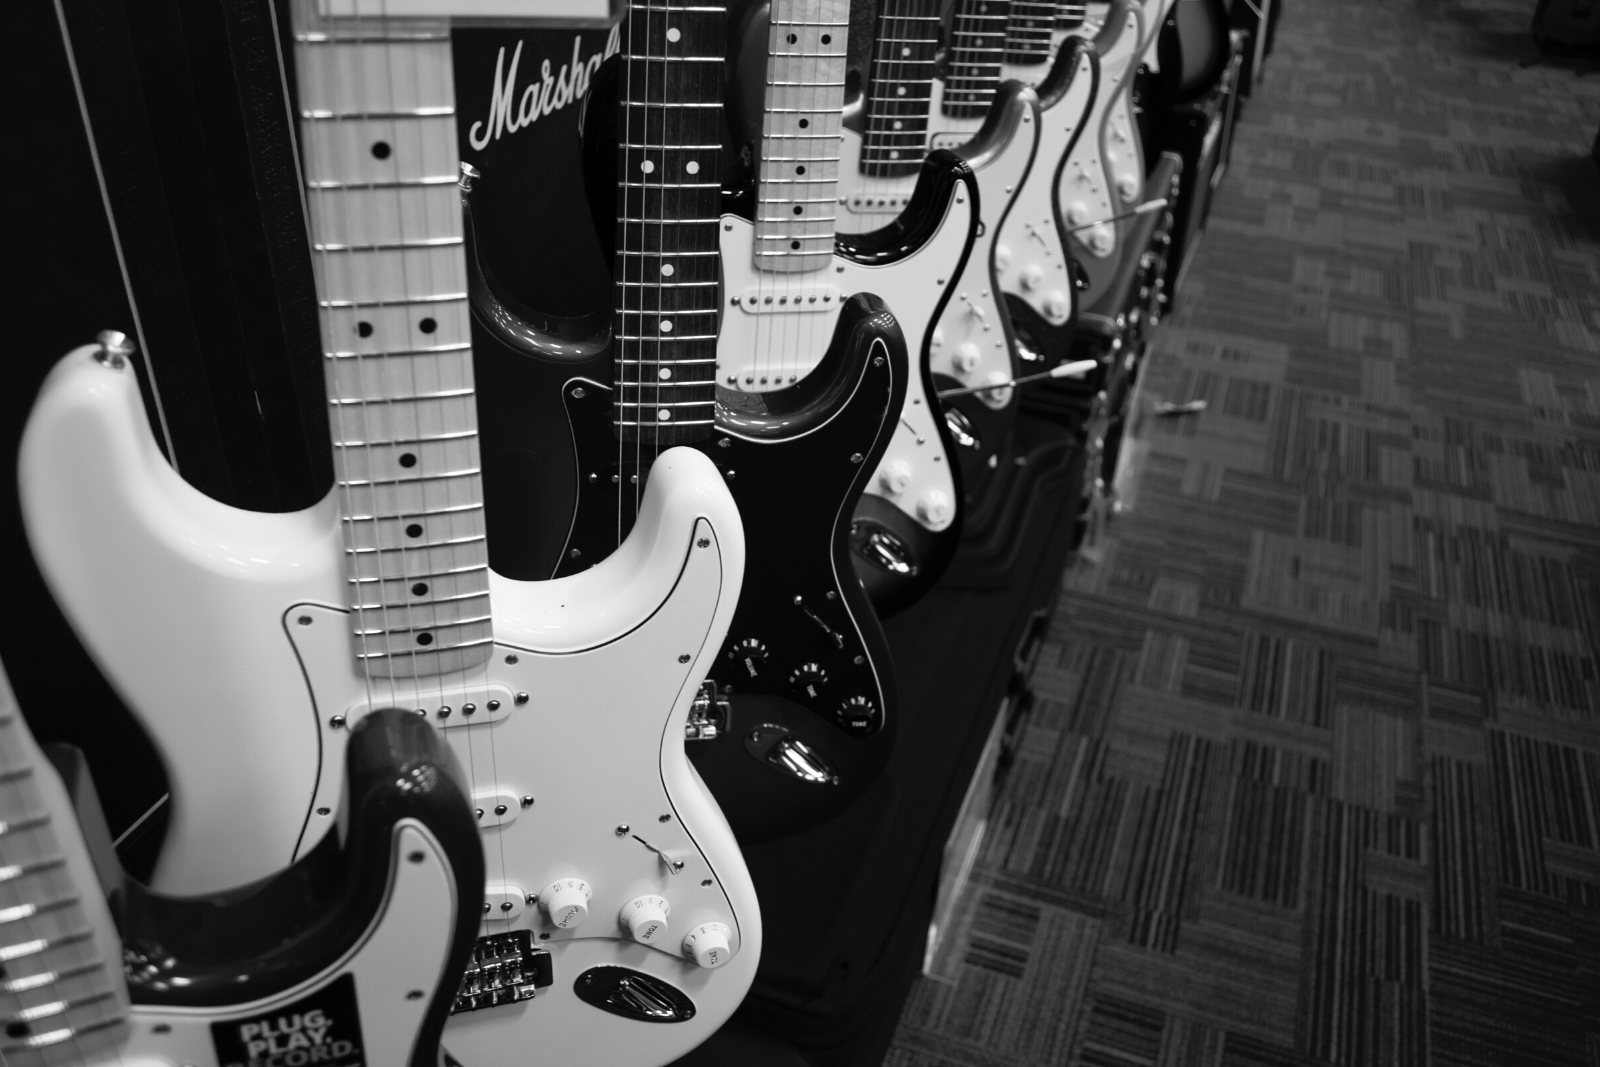 Guitars | Buying A Guitar Online Vs. In-Store: Which Is Best For You?